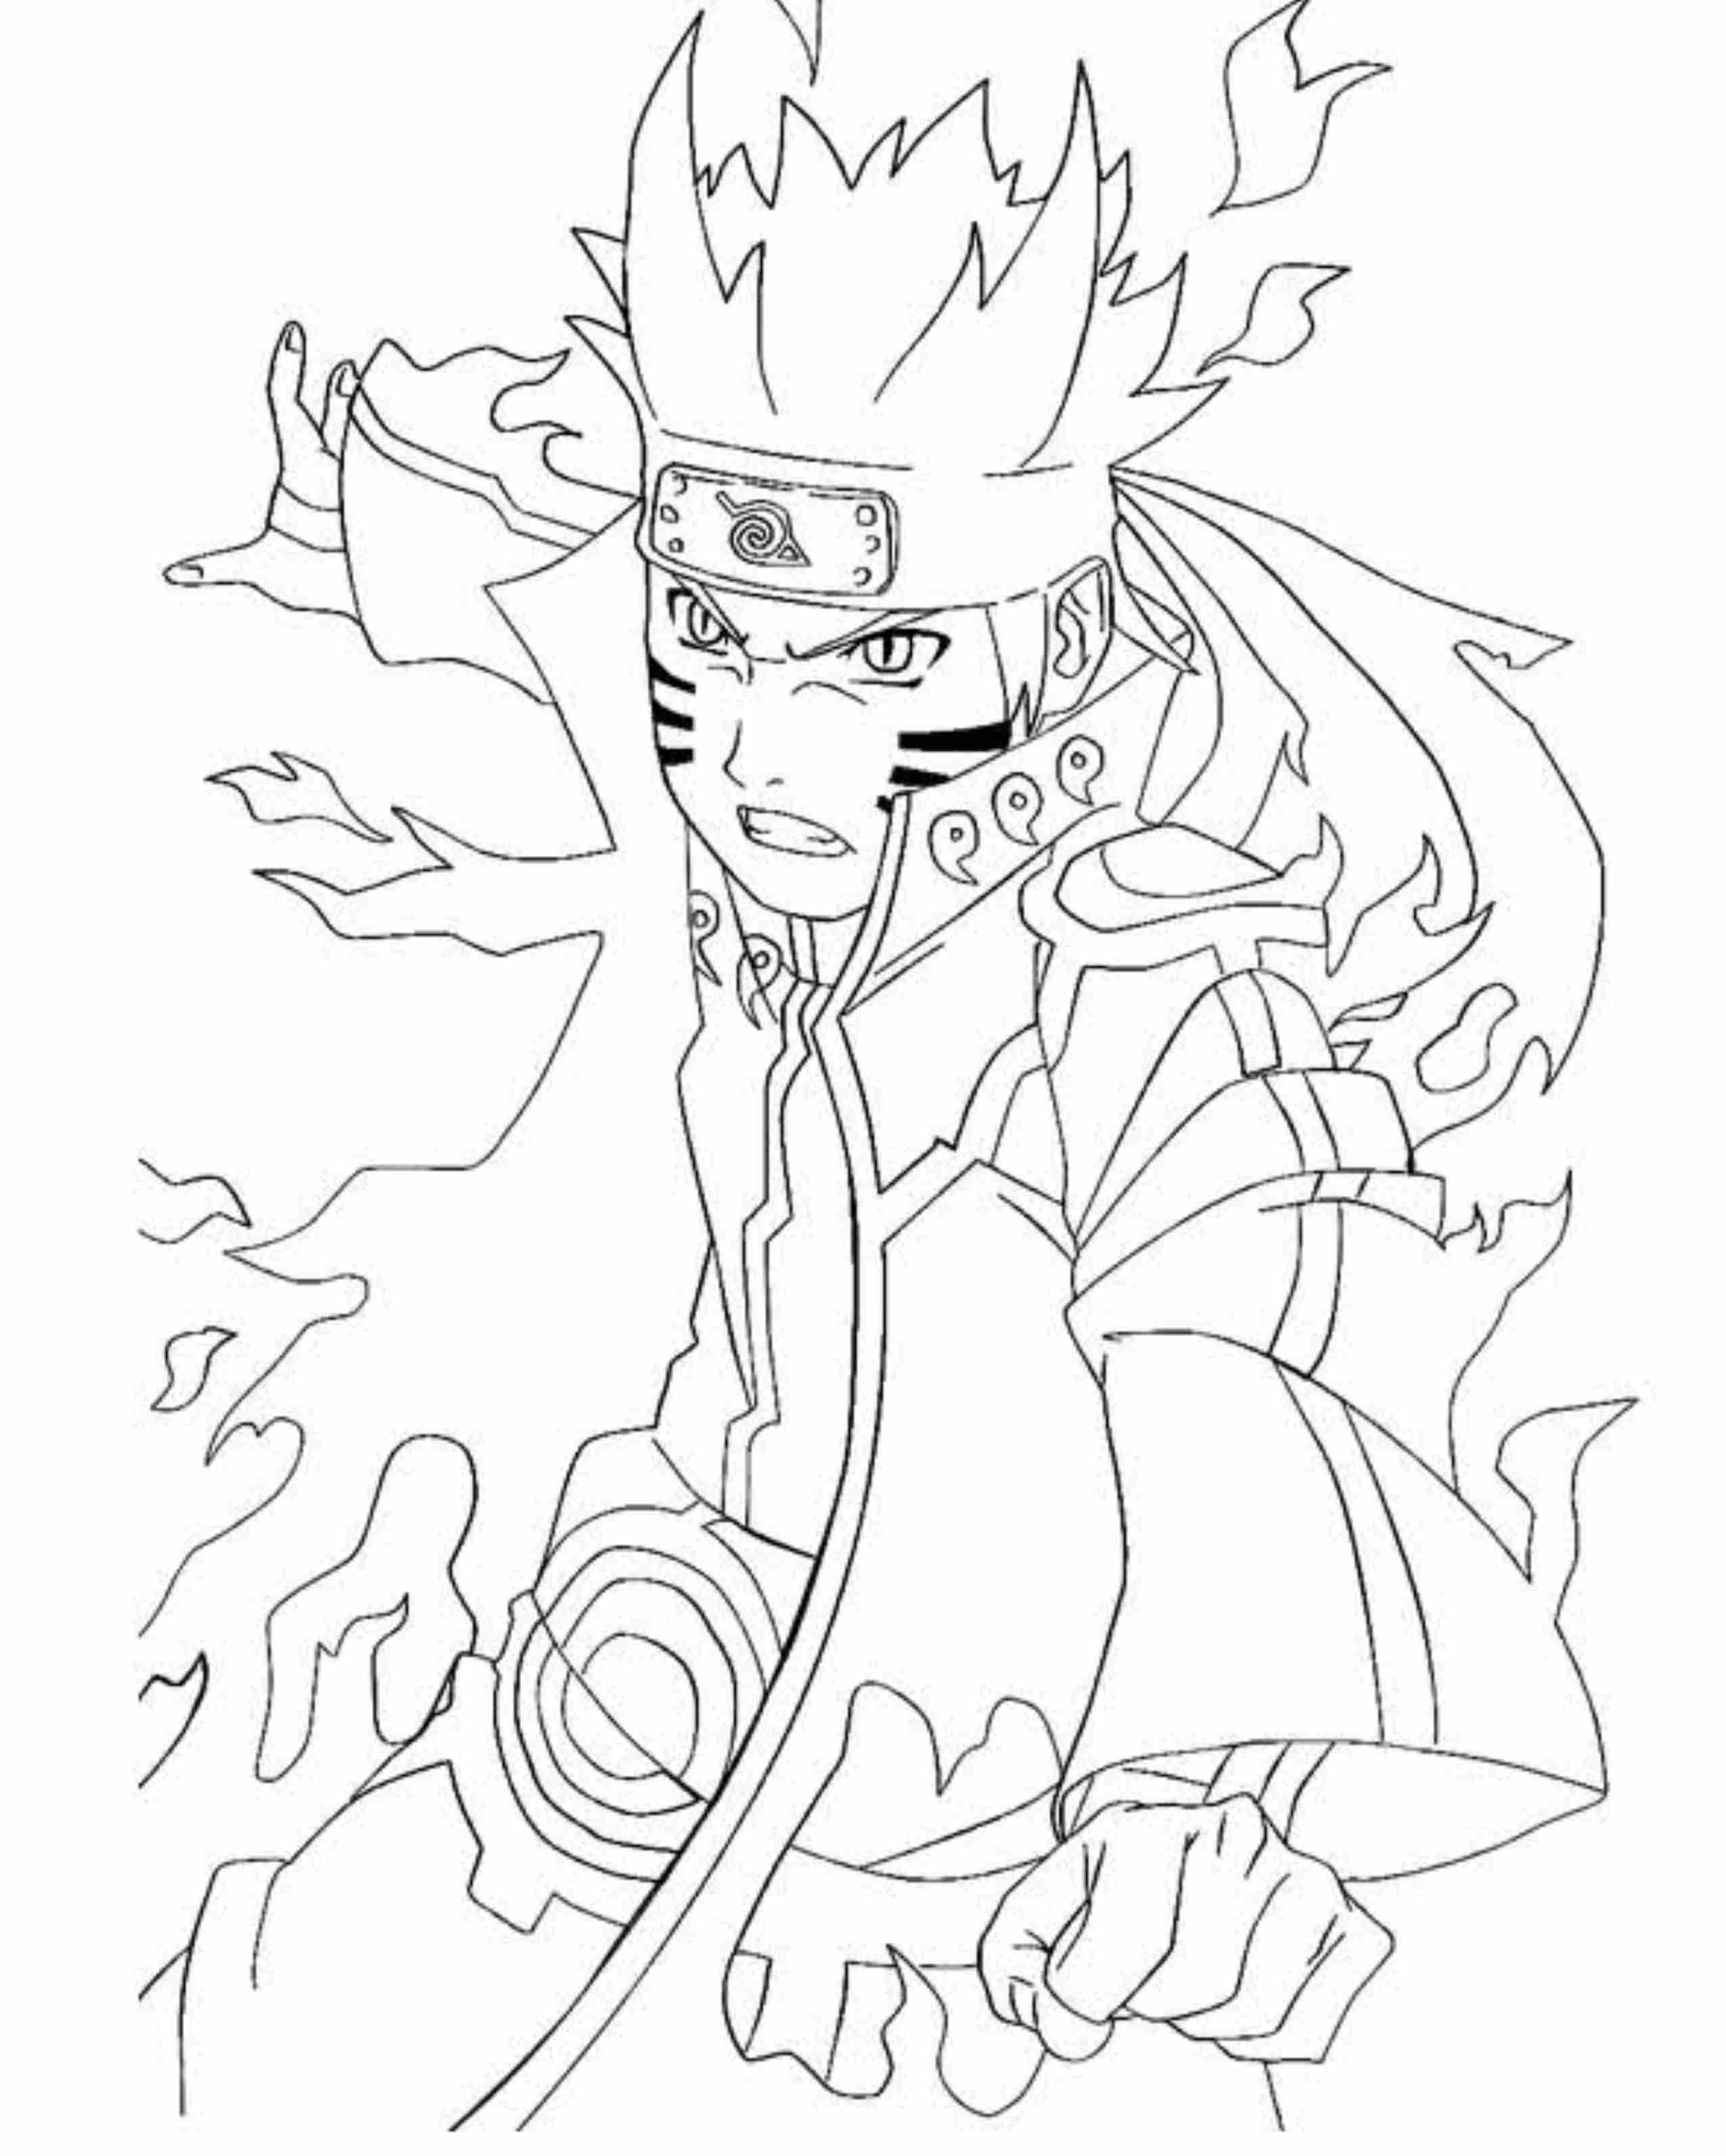 naruto shippuden coloring book naruto shippuden coloring pages to download and print for free book naruto shippuden coloring